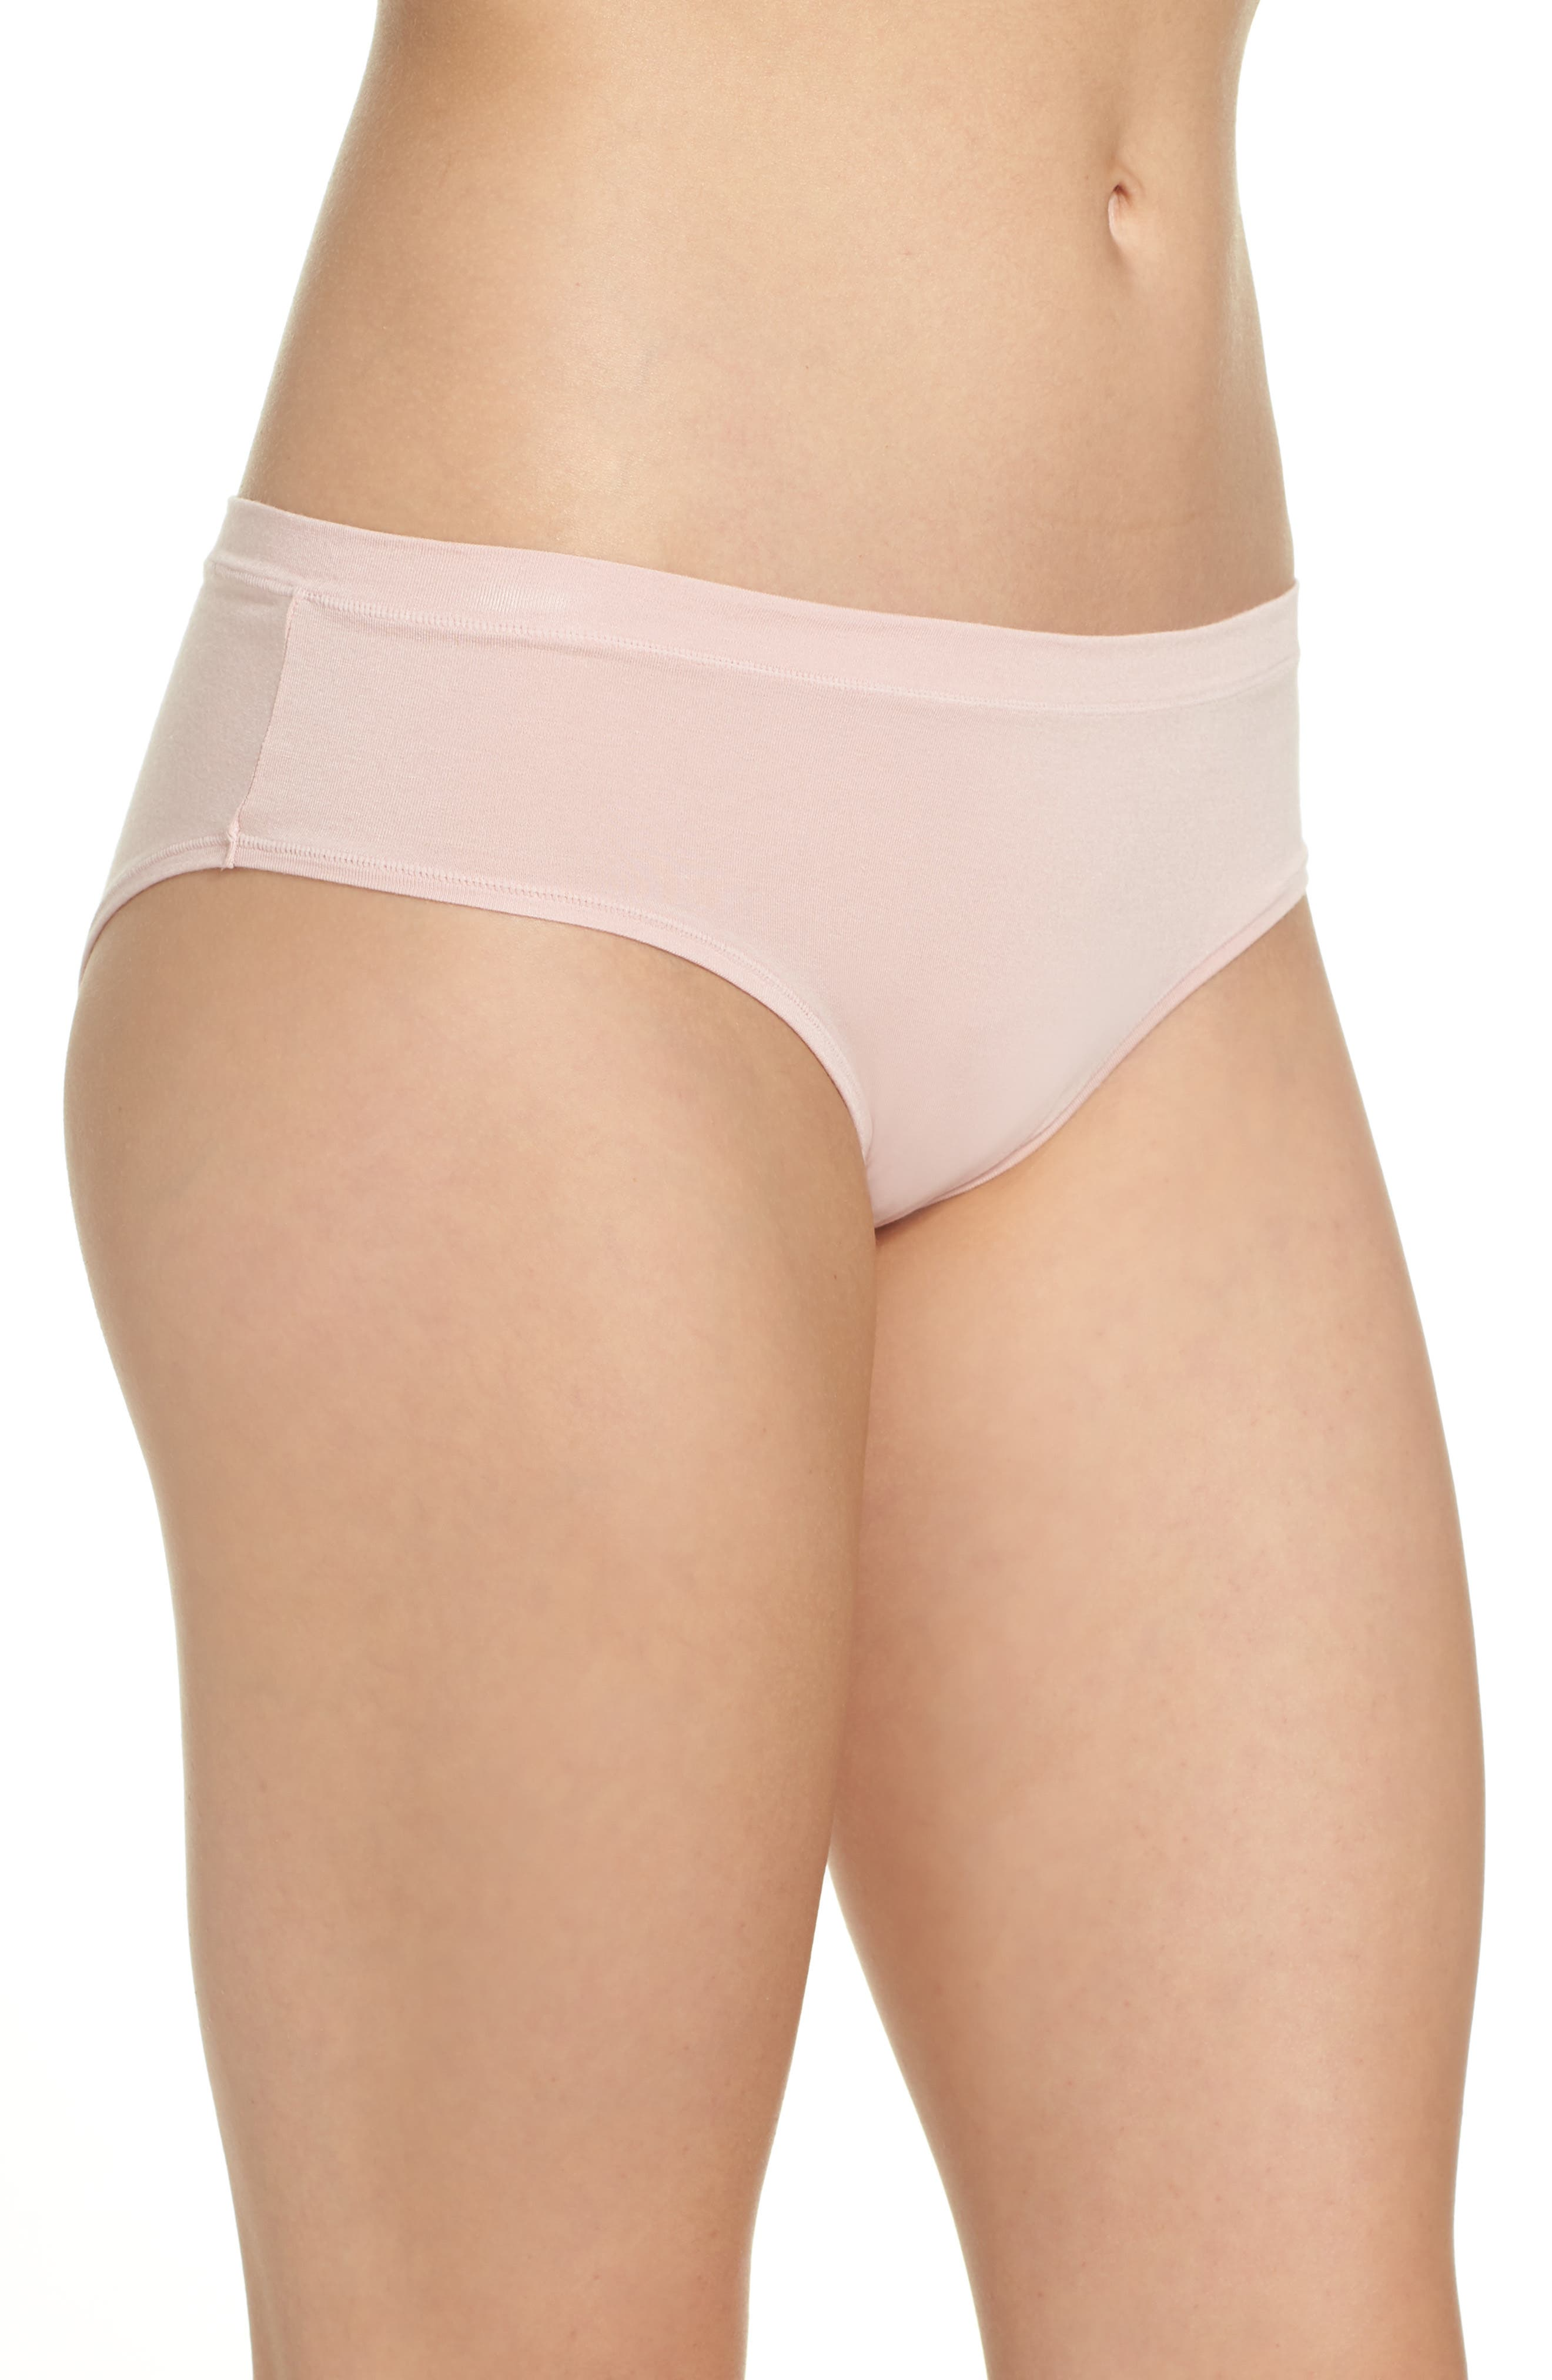 Hipster Briefs,                             Alternate thumbnail 3, color,                             Pink Silver